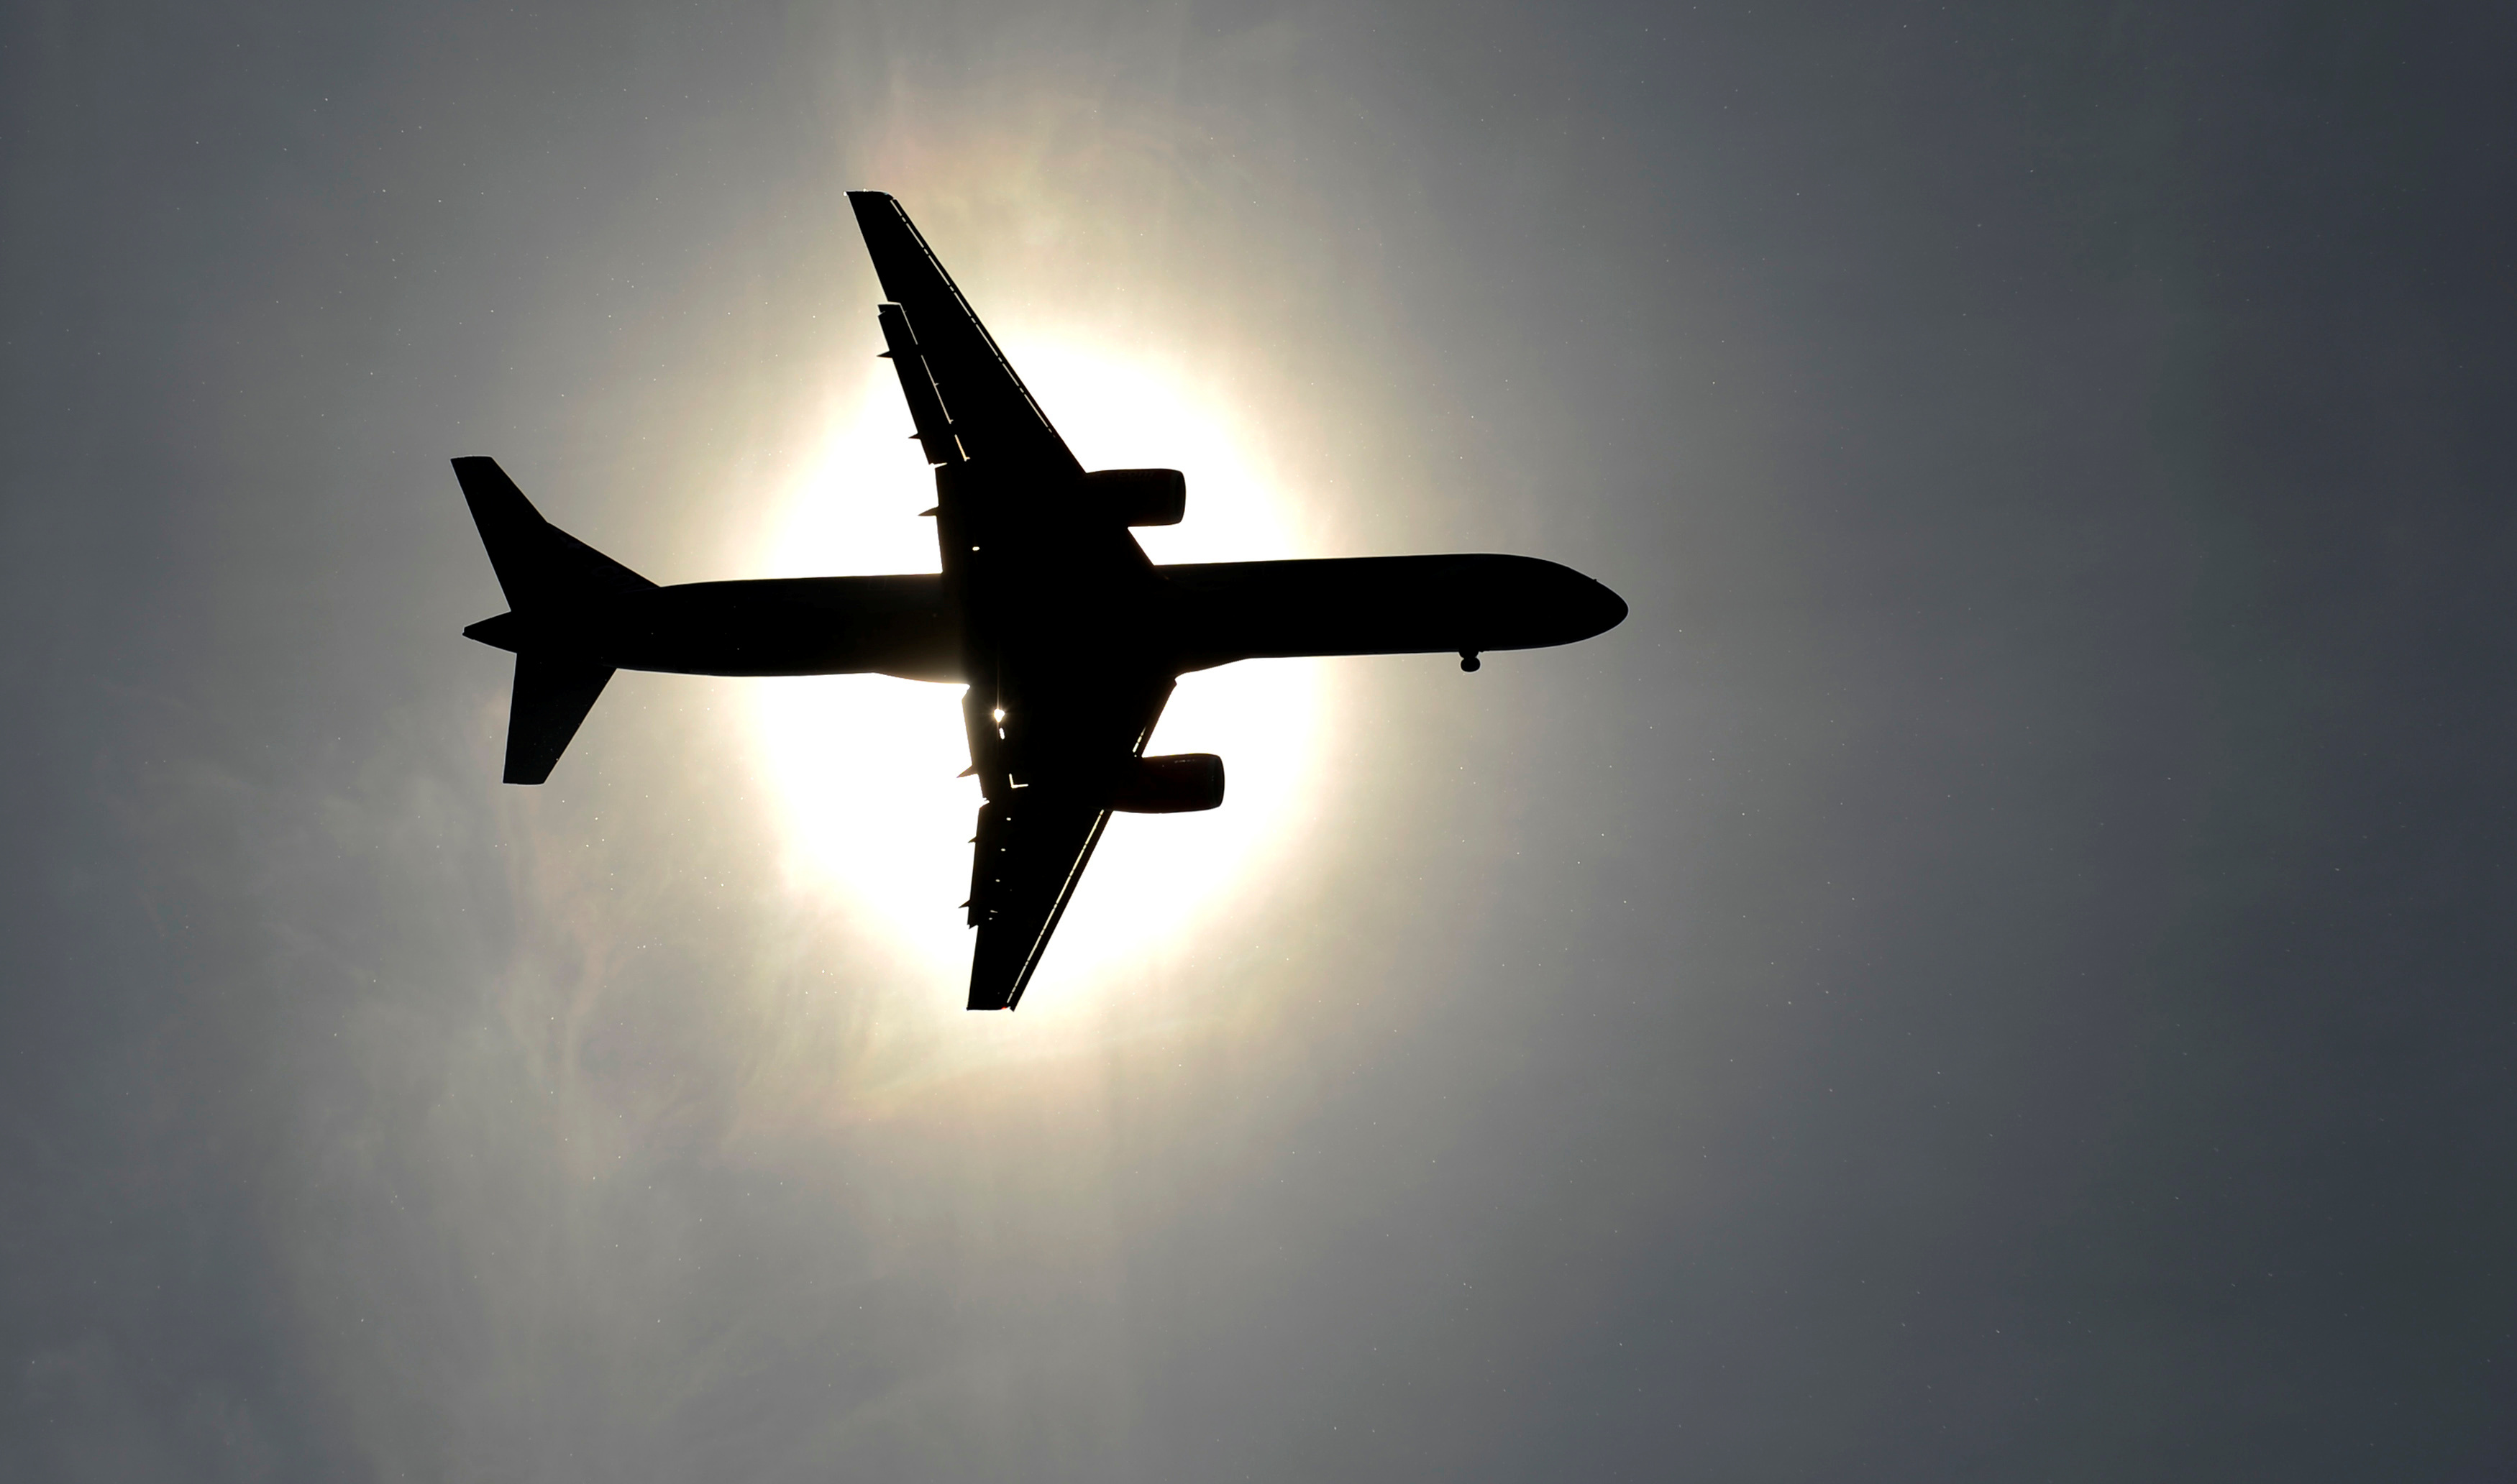 A plane approaching Leeds Bradford airport passes in front of the sun in Leeds May 26, 2013. REUTERS/Philip Brown/File Photo